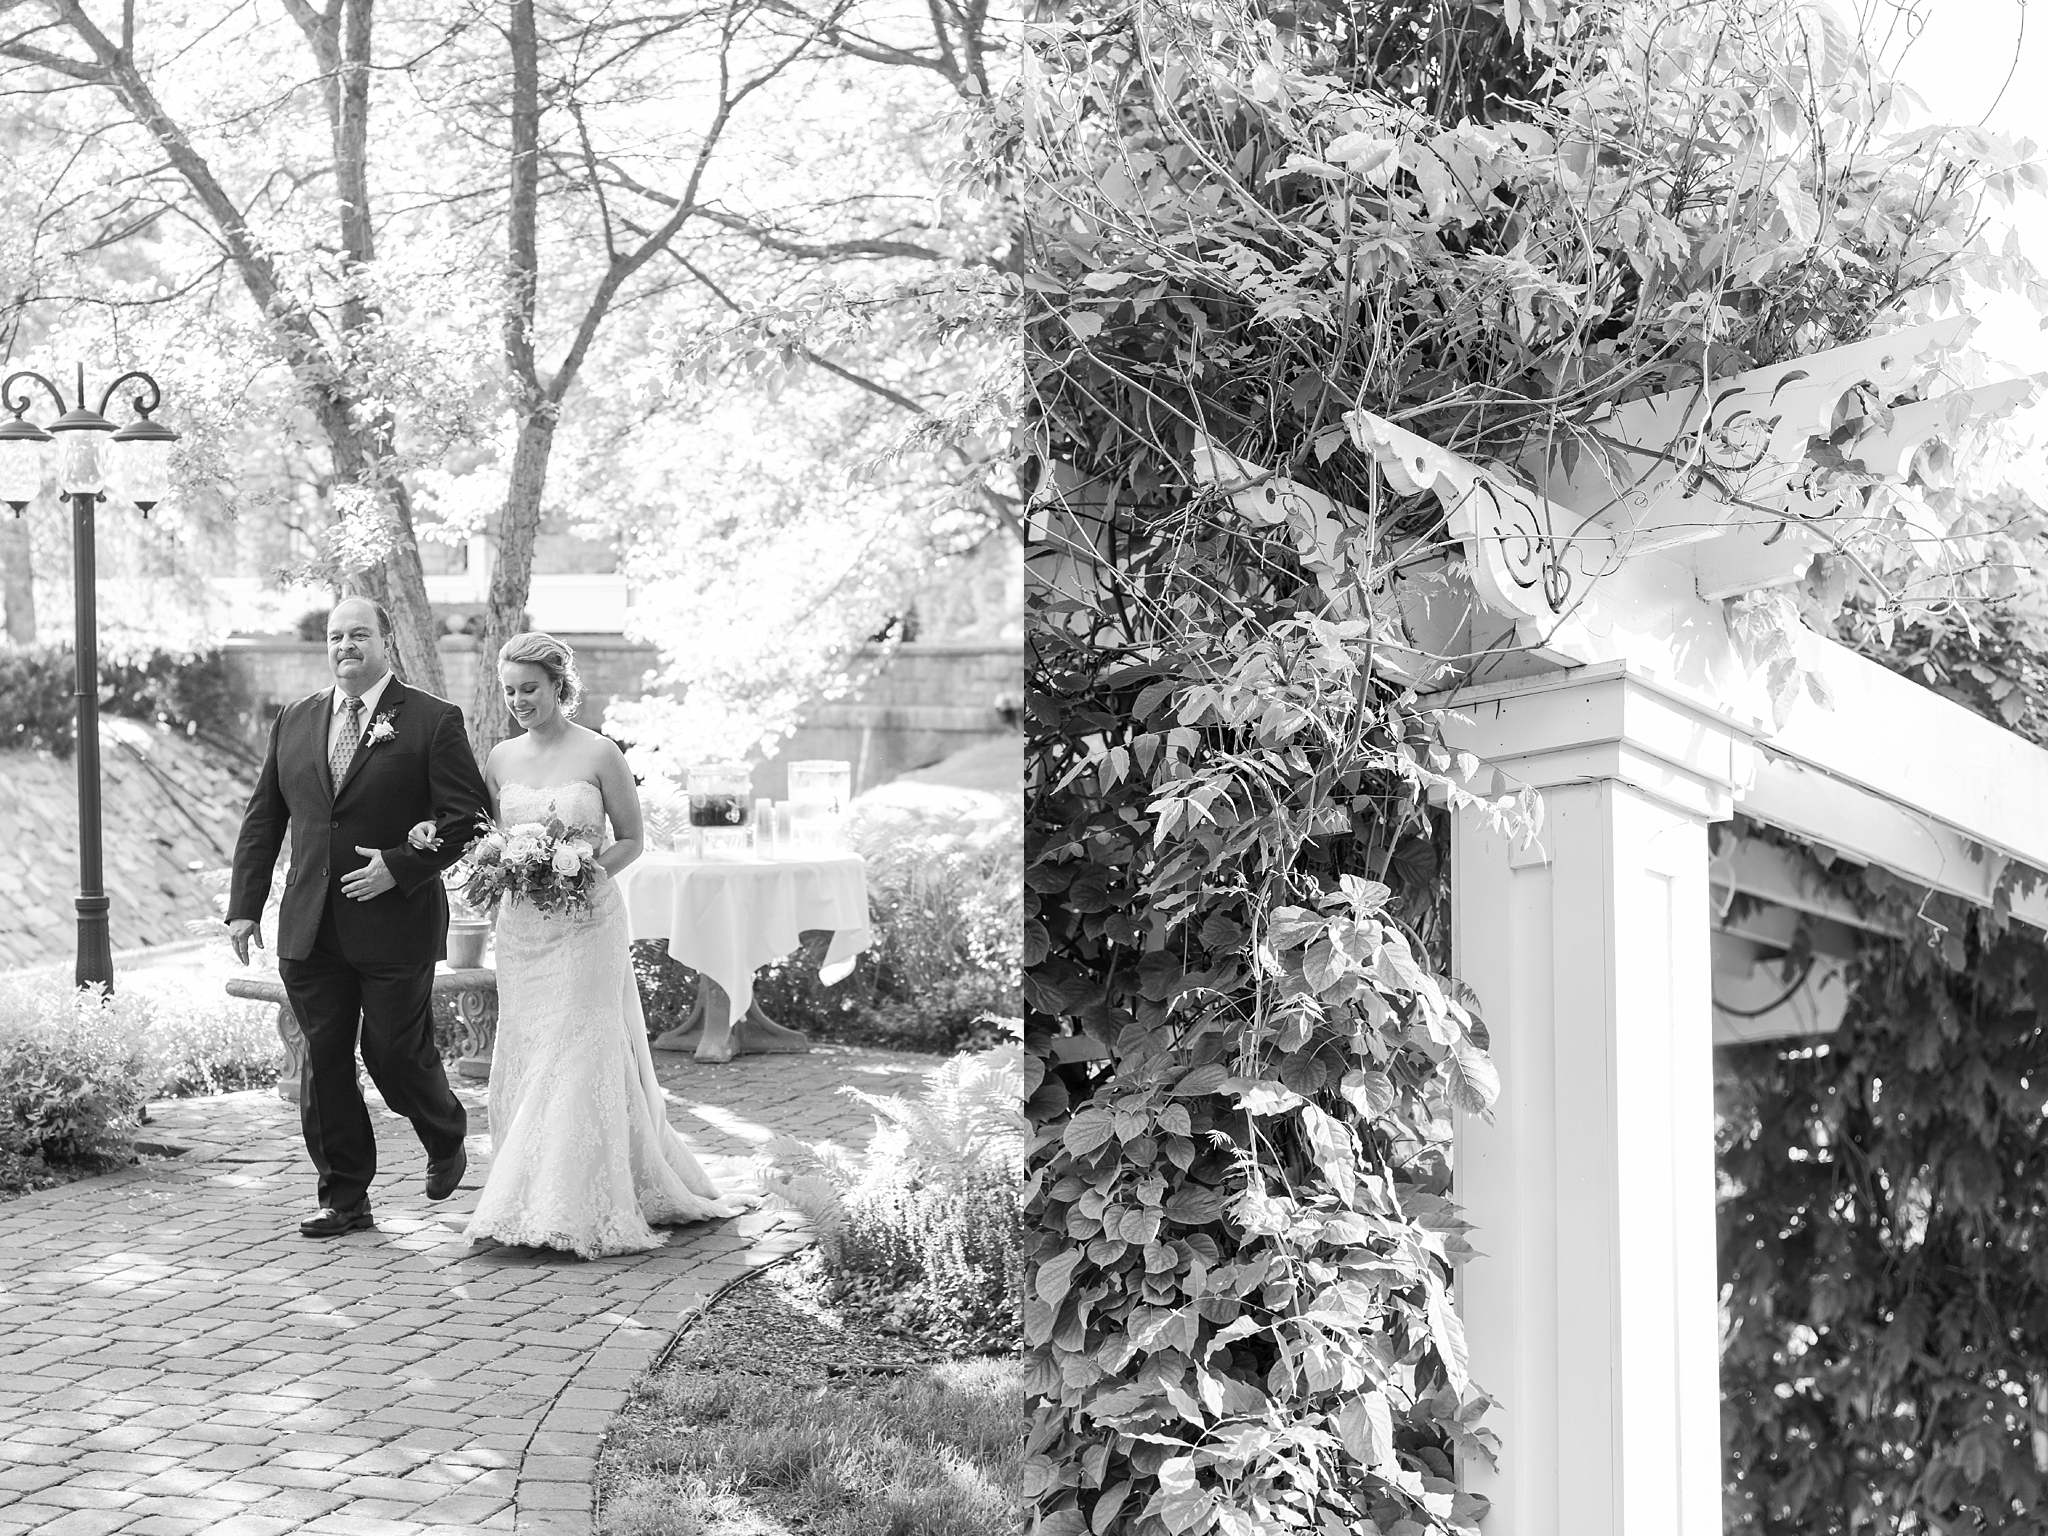 fun-candid-laid-back-wedding-photos-at-wellers-carriage-house-in-saline-michigan-and-at-the-eagle-crest-golf-resort-by-courtney-carolyn-photography_0061.jpg